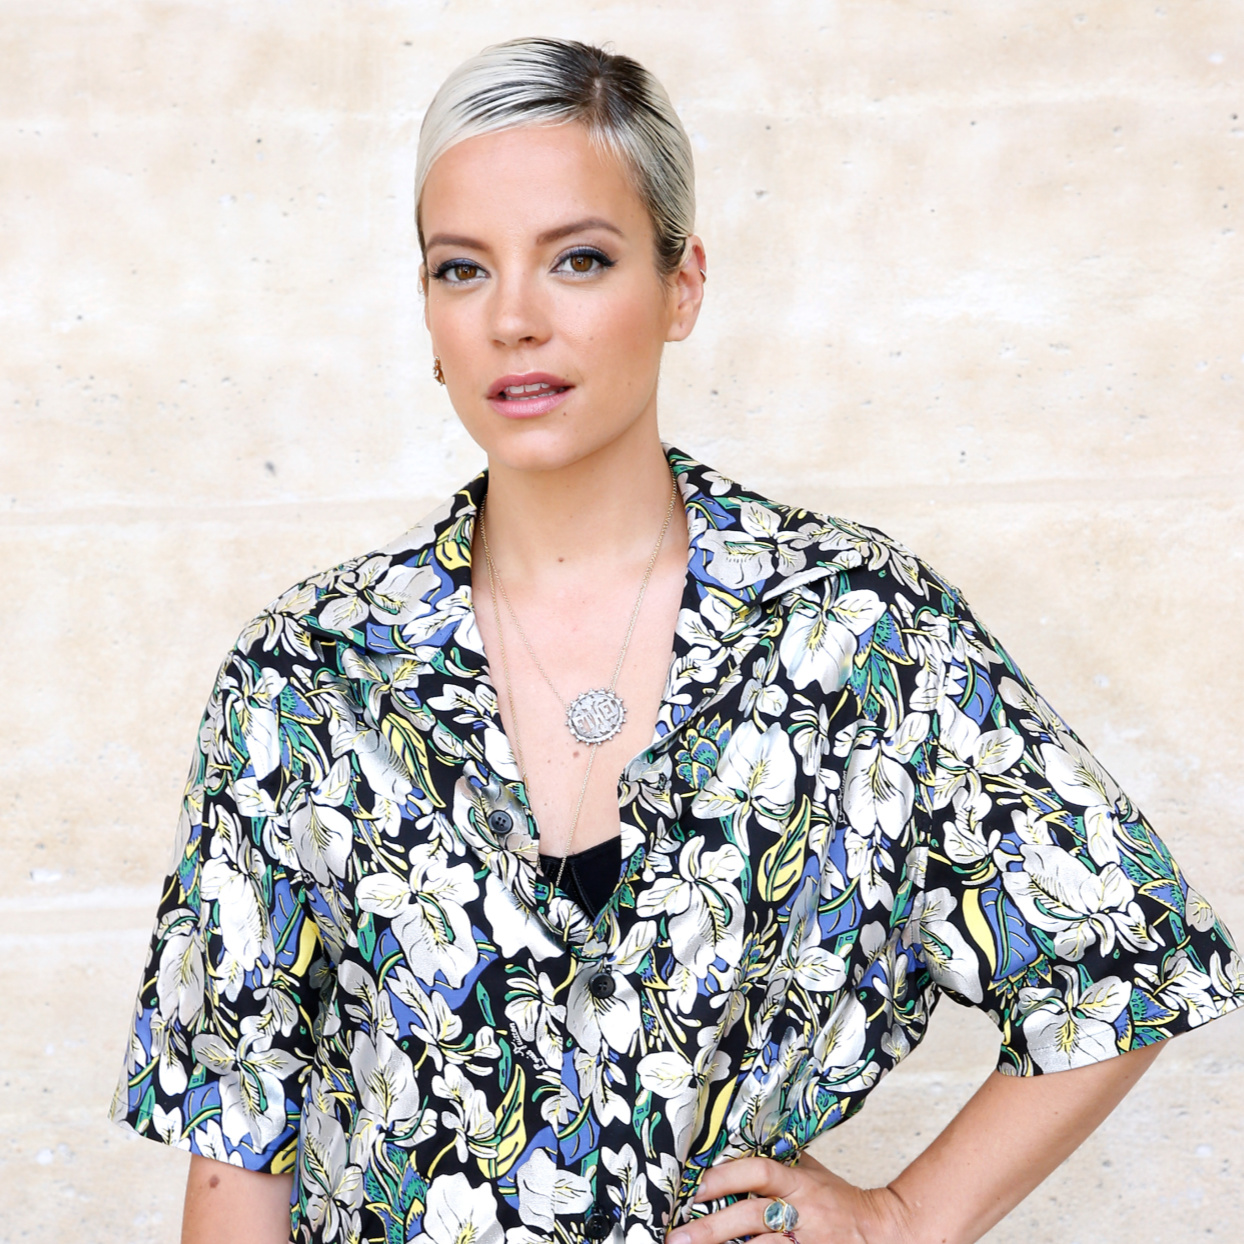 Lily Allen wearing patterned shirt